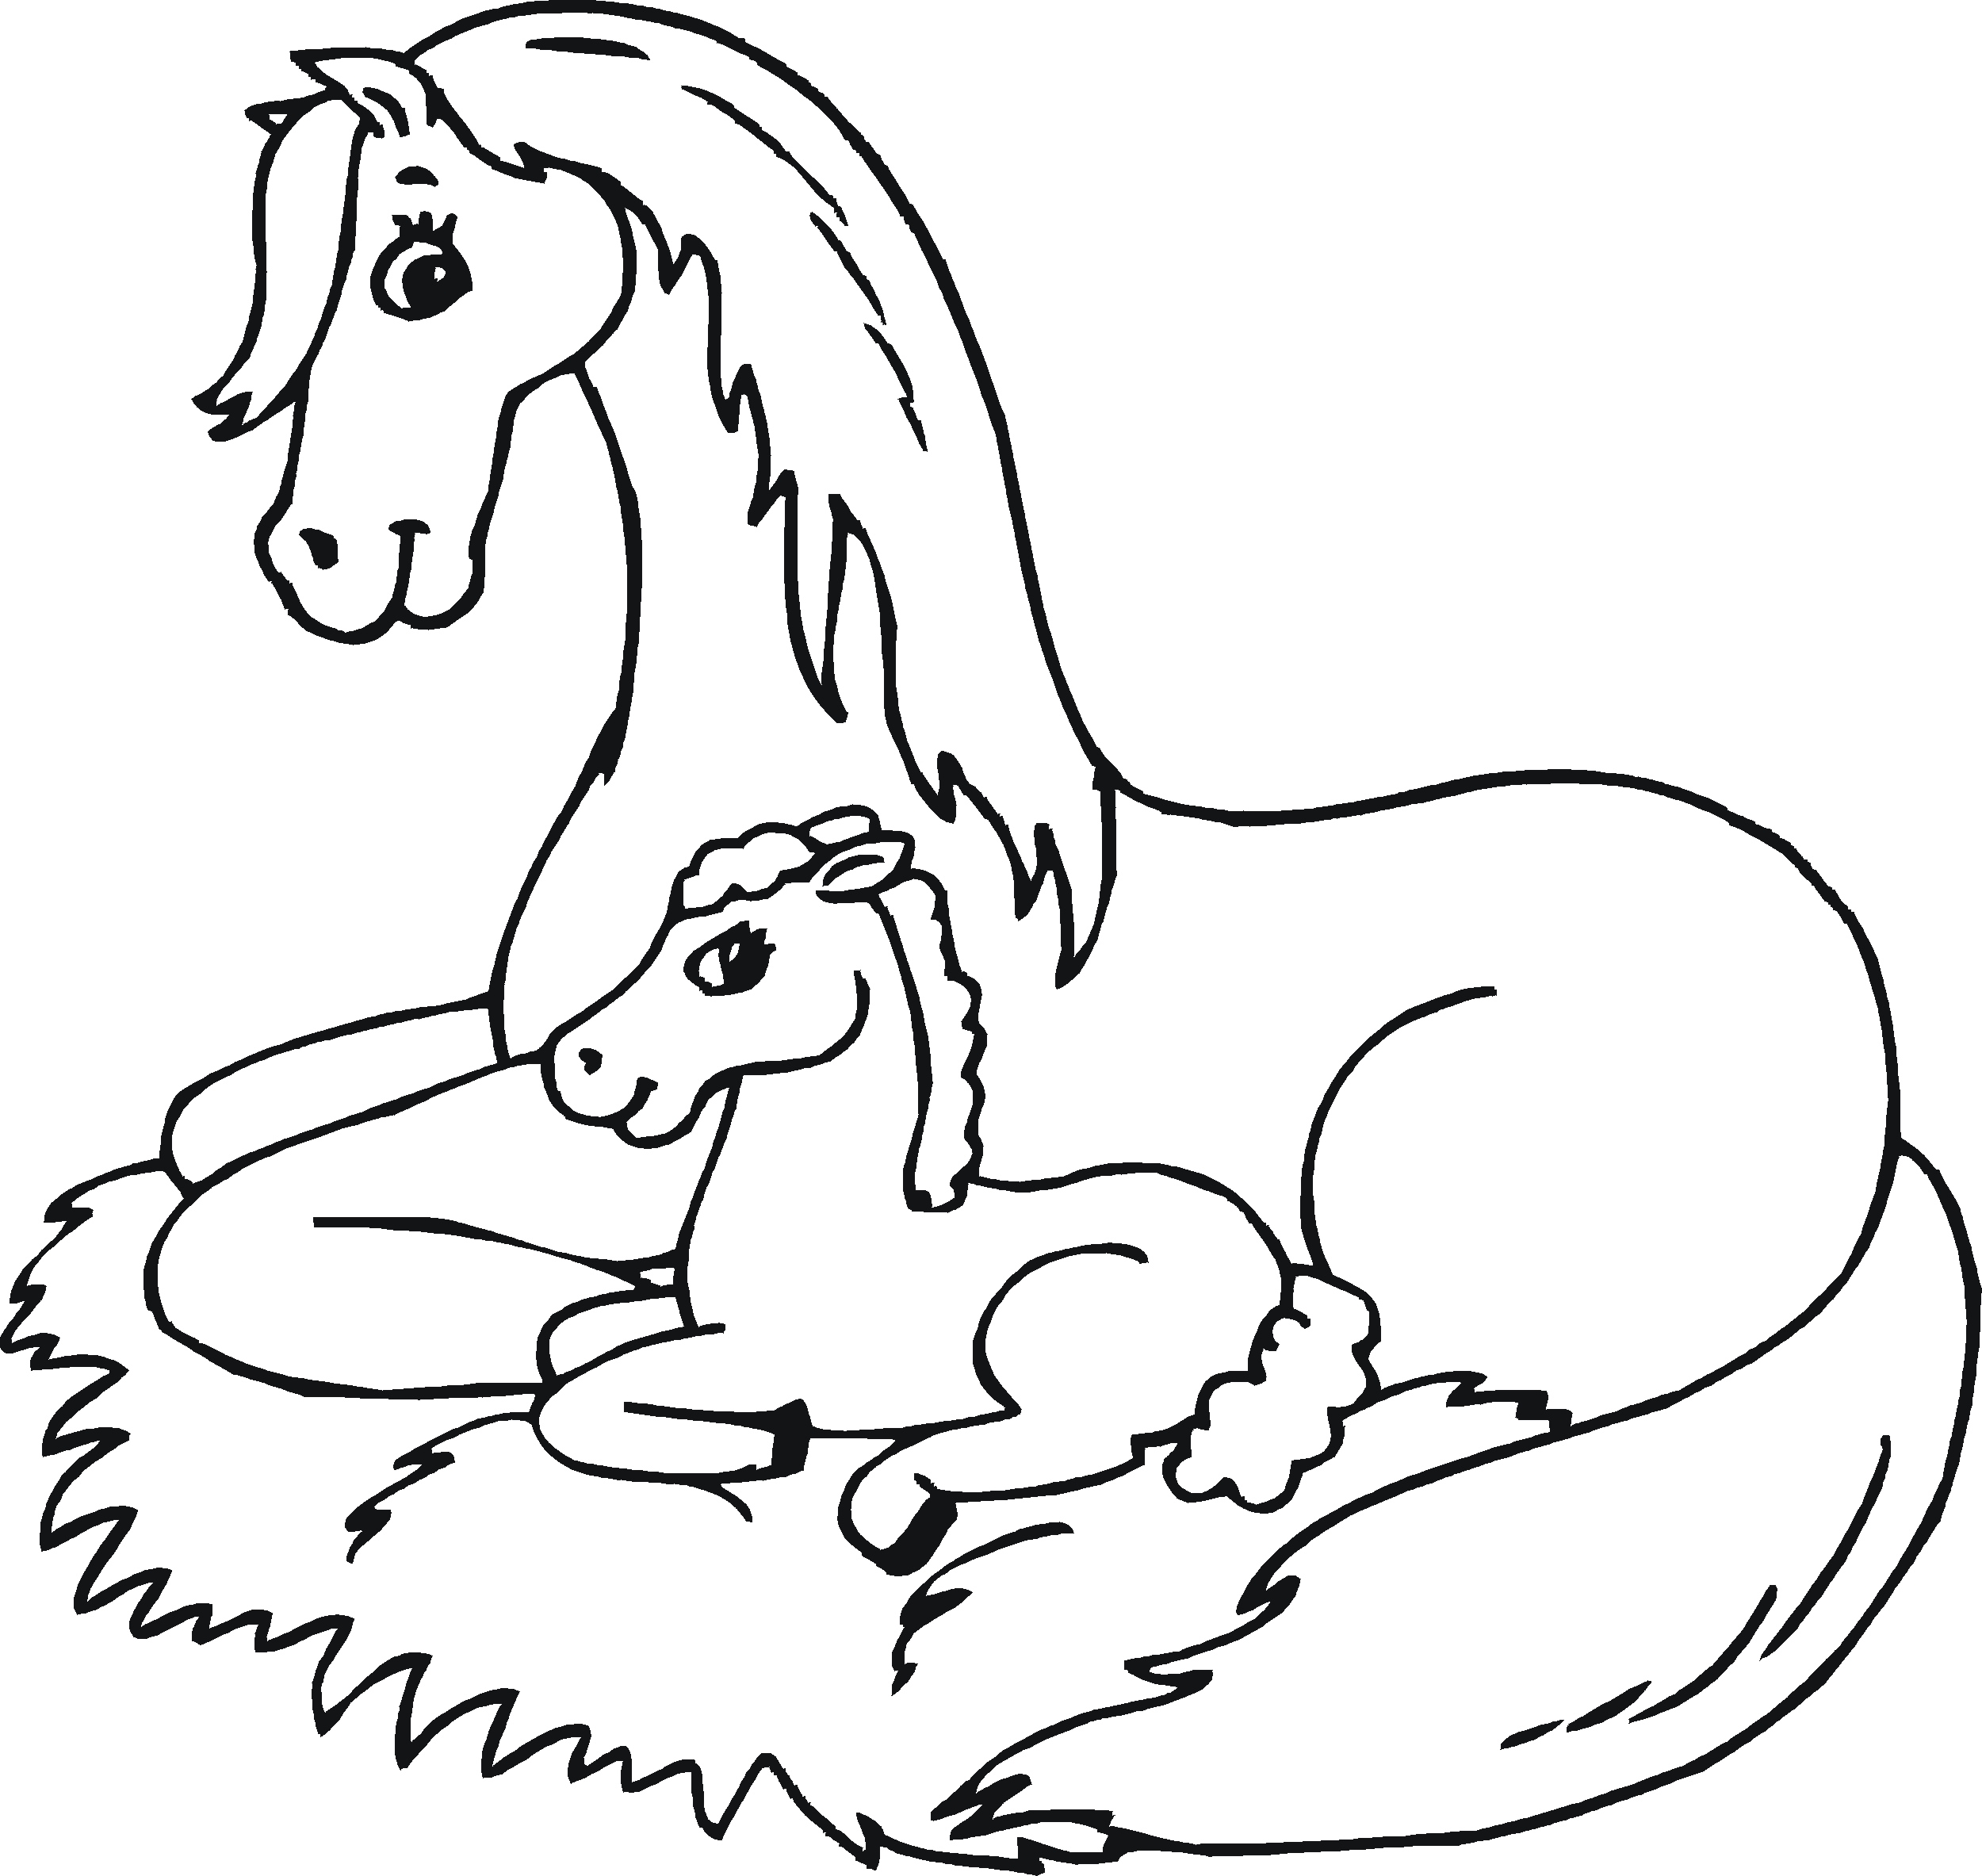 horse coloring sheets fun horse coloring pages for your kids printable horse coloring sheets